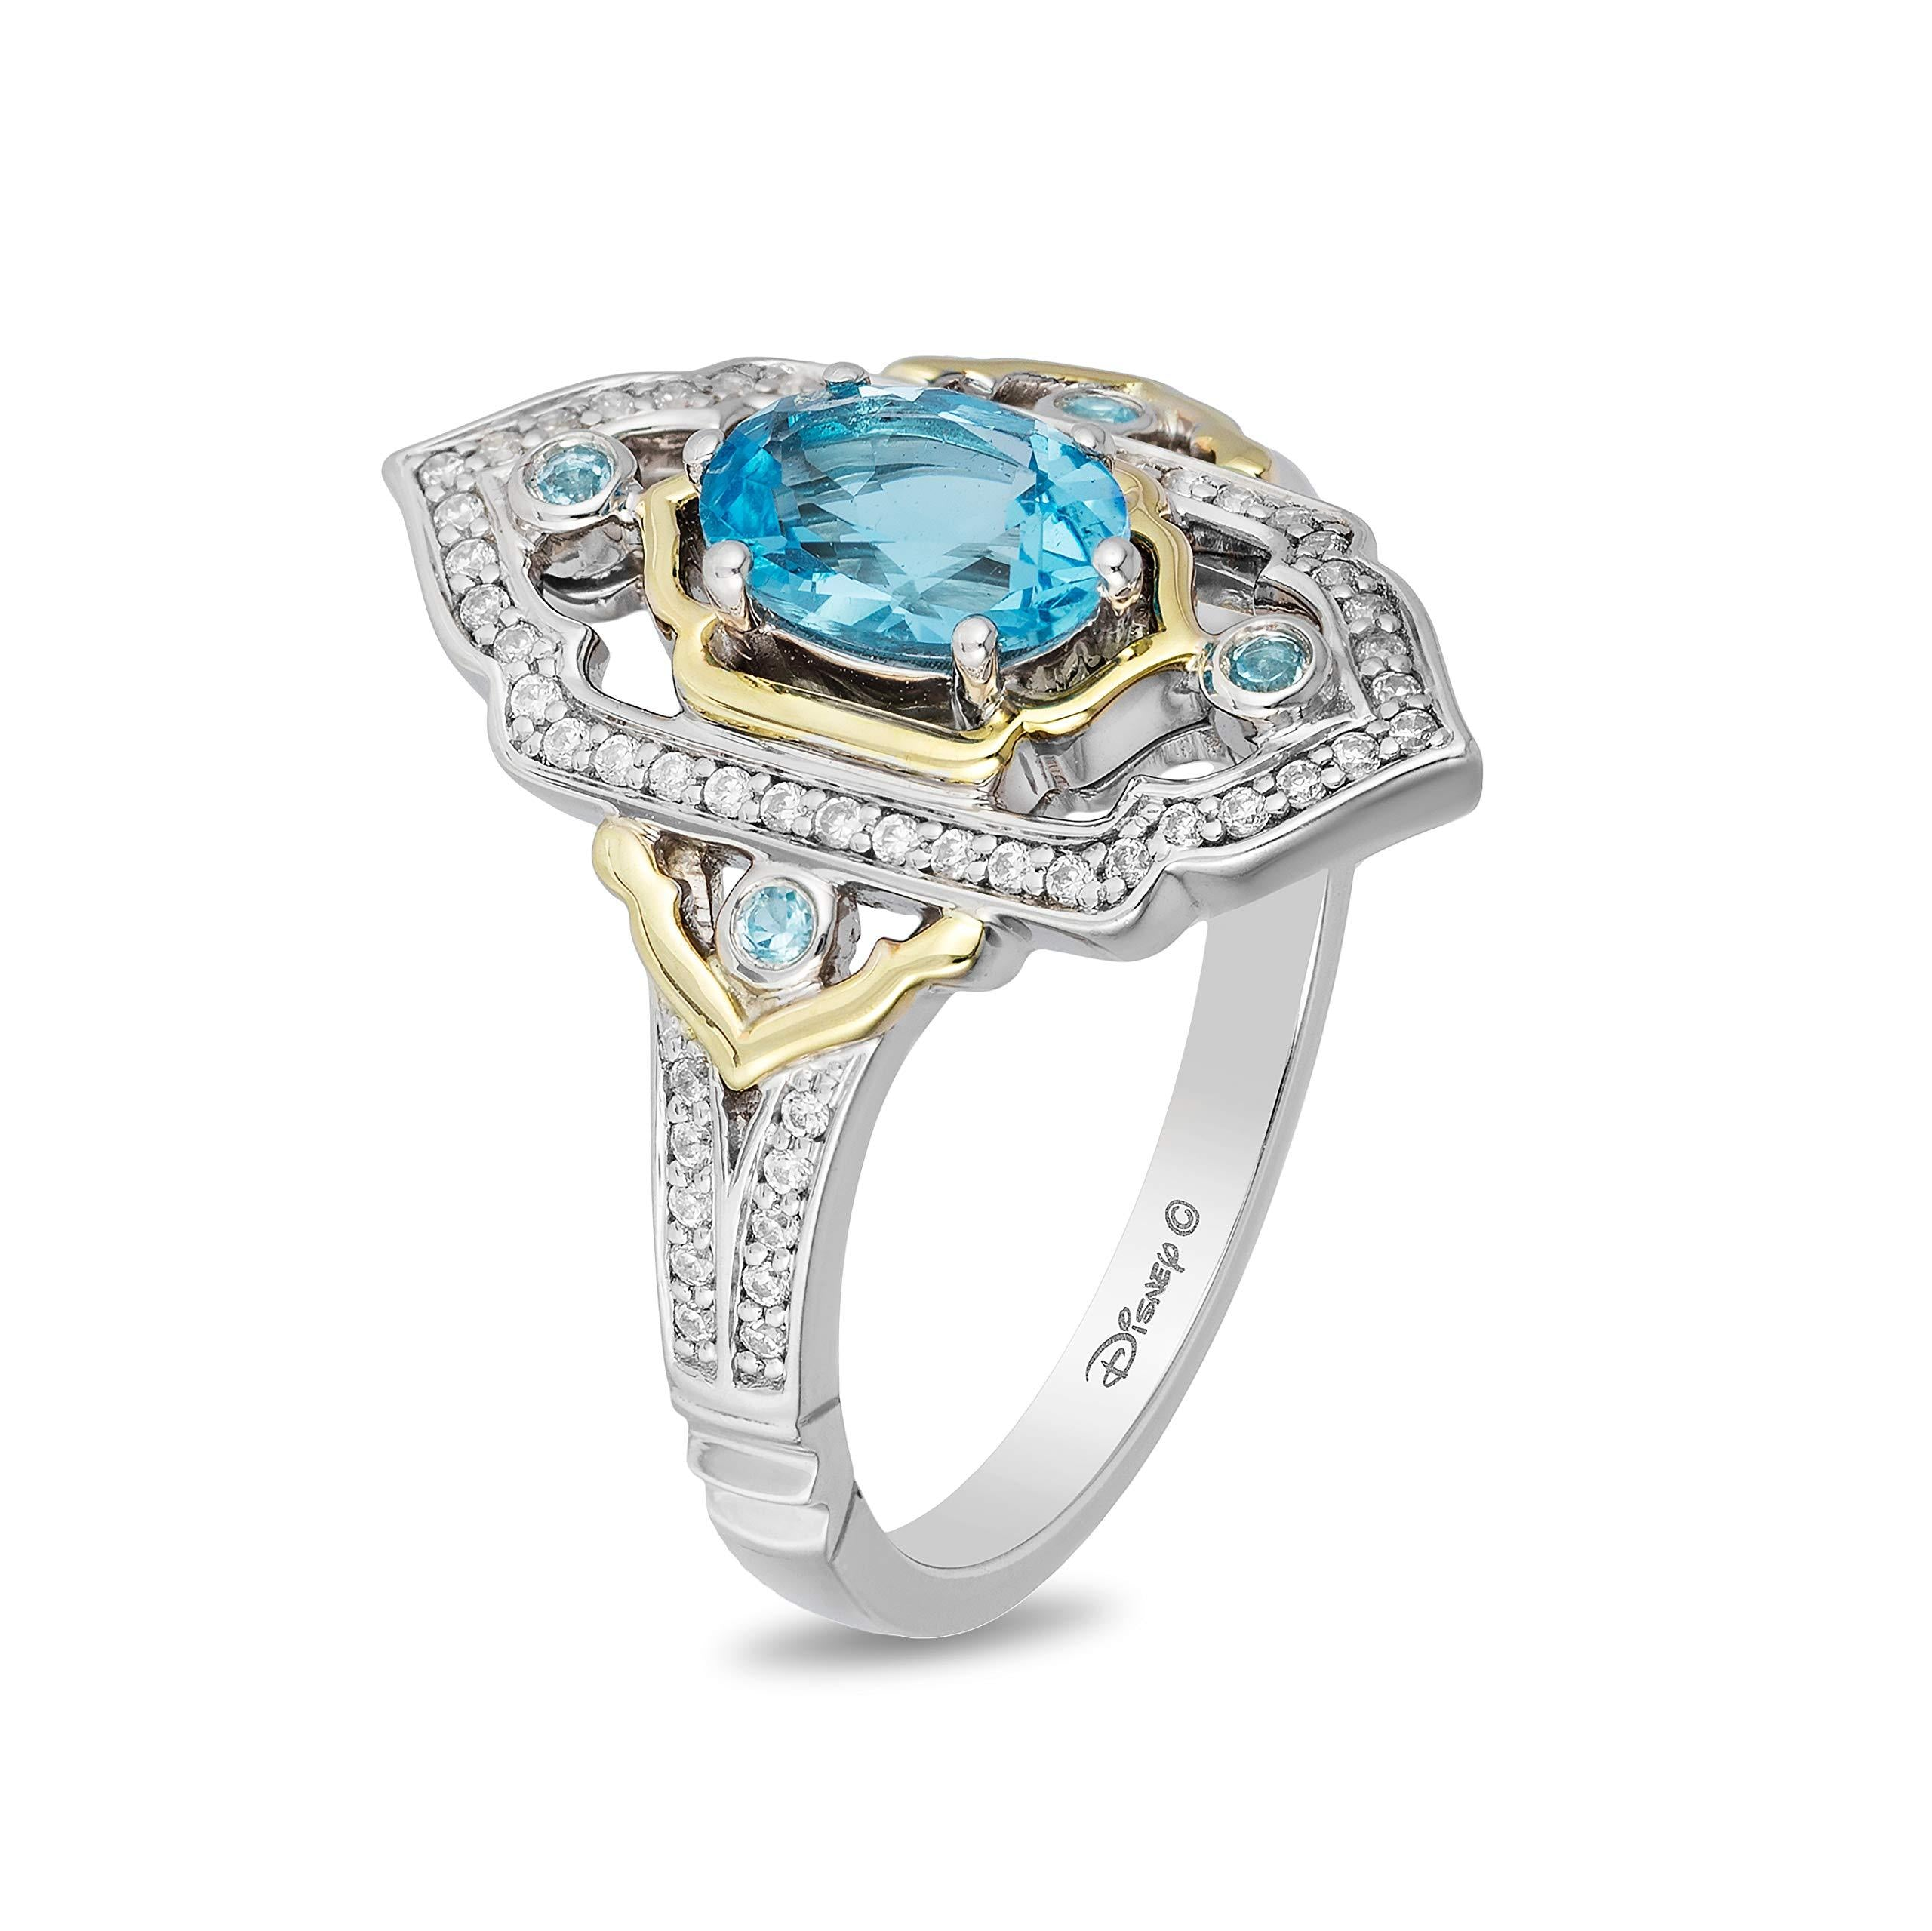 enchanted_disney-jasmine_ring-9k_yellow_gold_and_sterling_silver_0.20CTTW_2